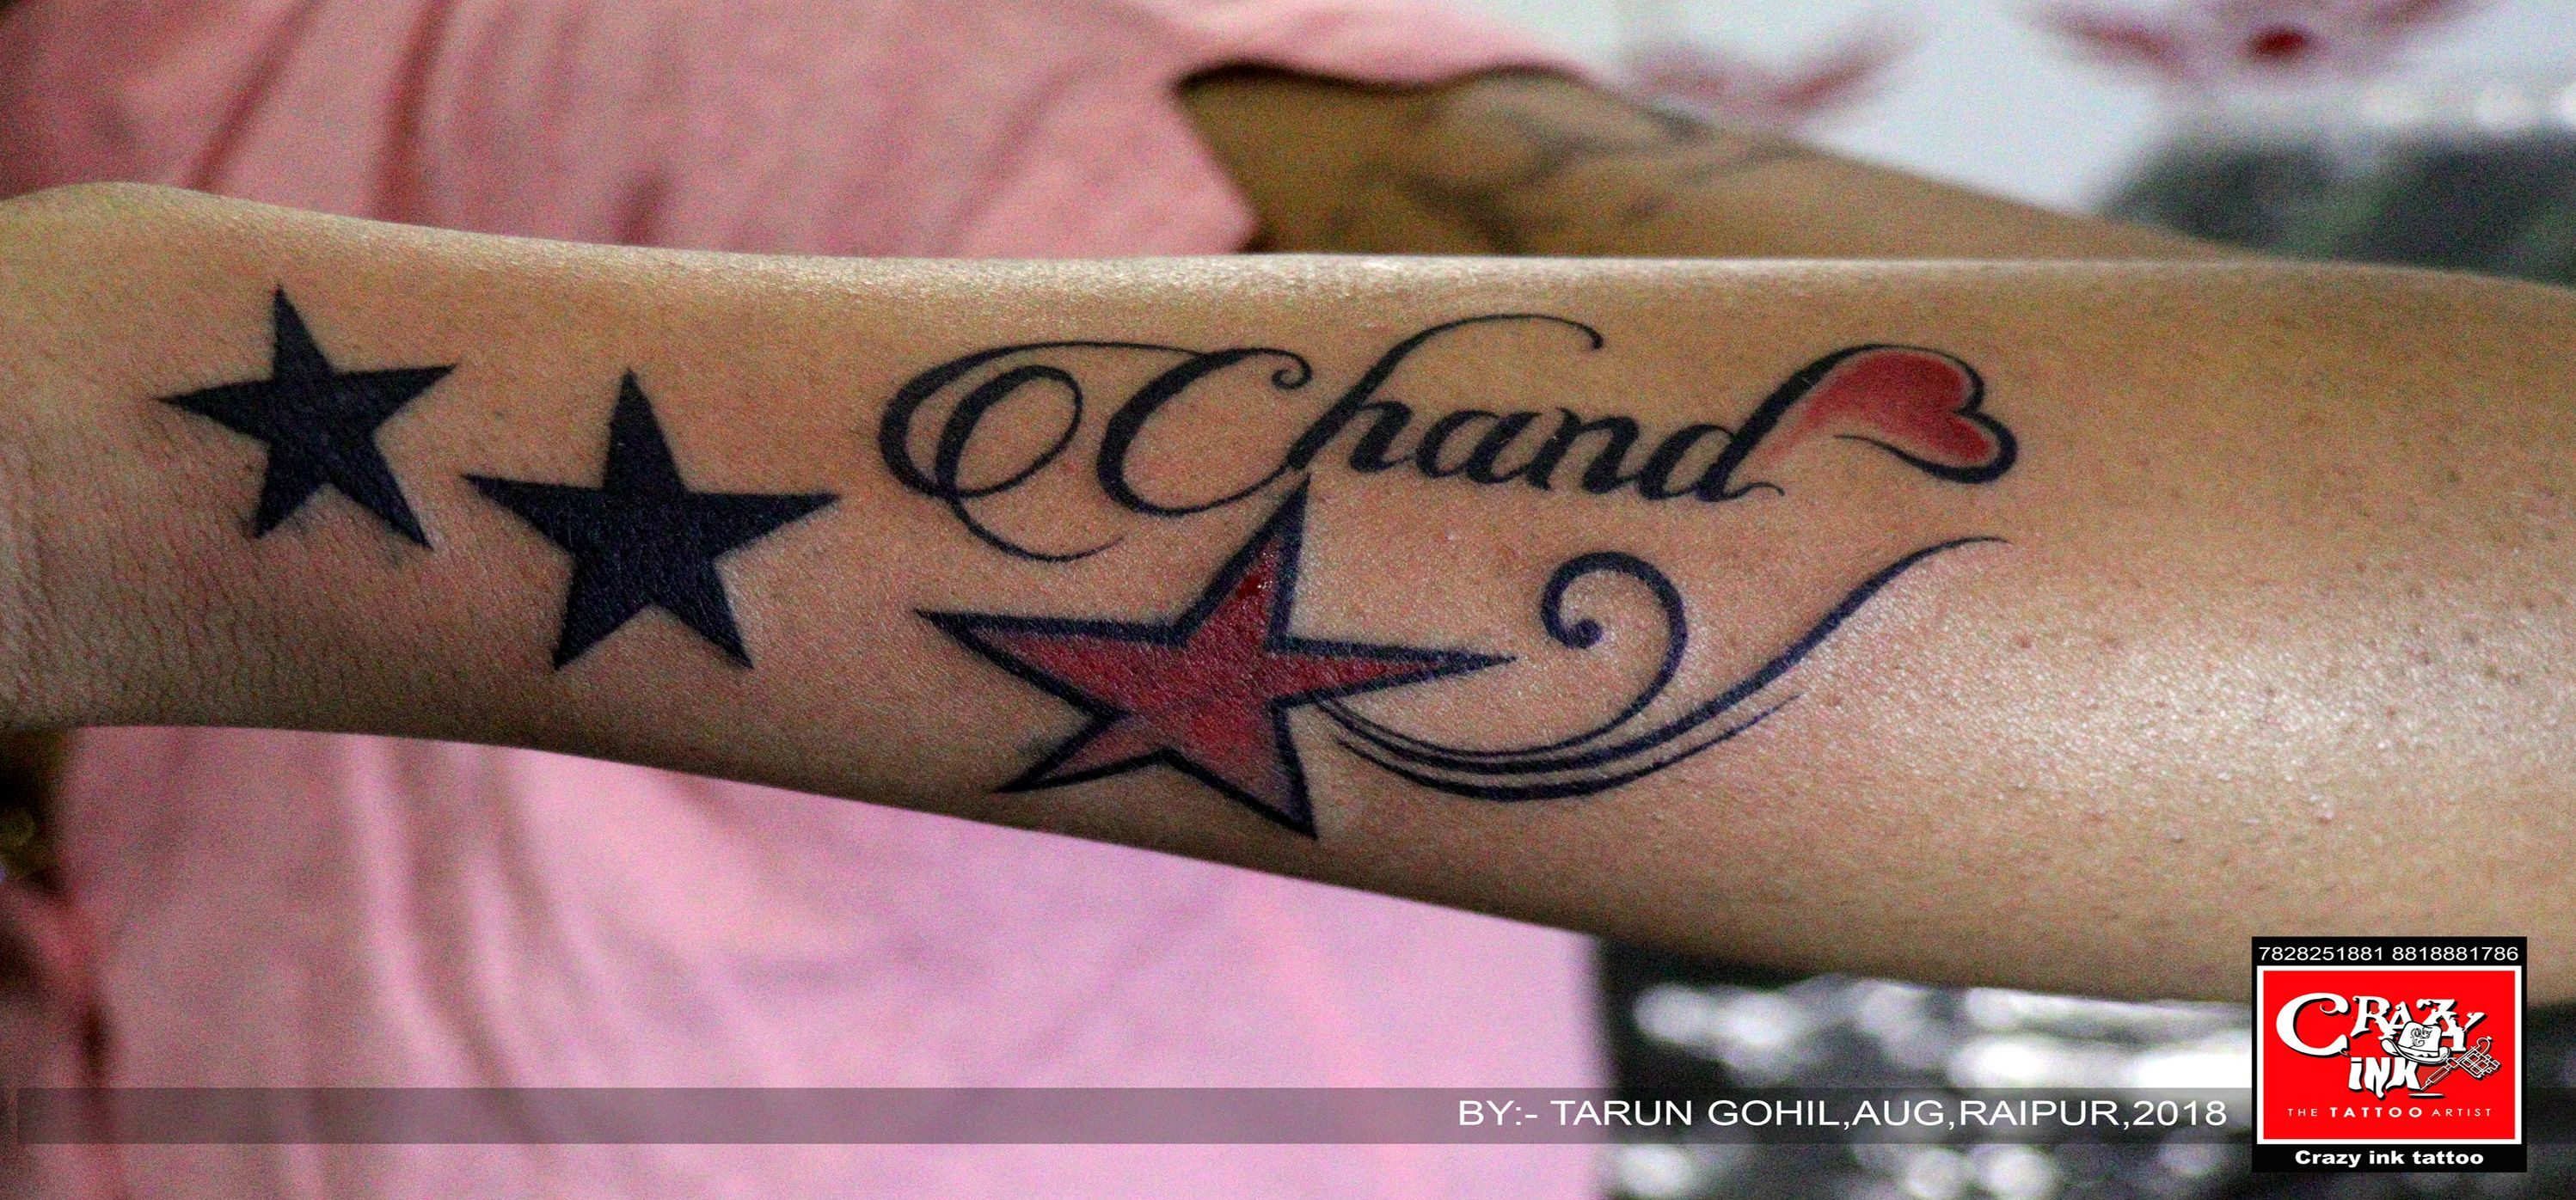 76d1aa84e5ff3 stars tattoo design with name tattoo done at crazy ink tattoo studio in  raipur. #starstattoo #nametatttoo #girltattoo #besttattoo #raipurartist ...